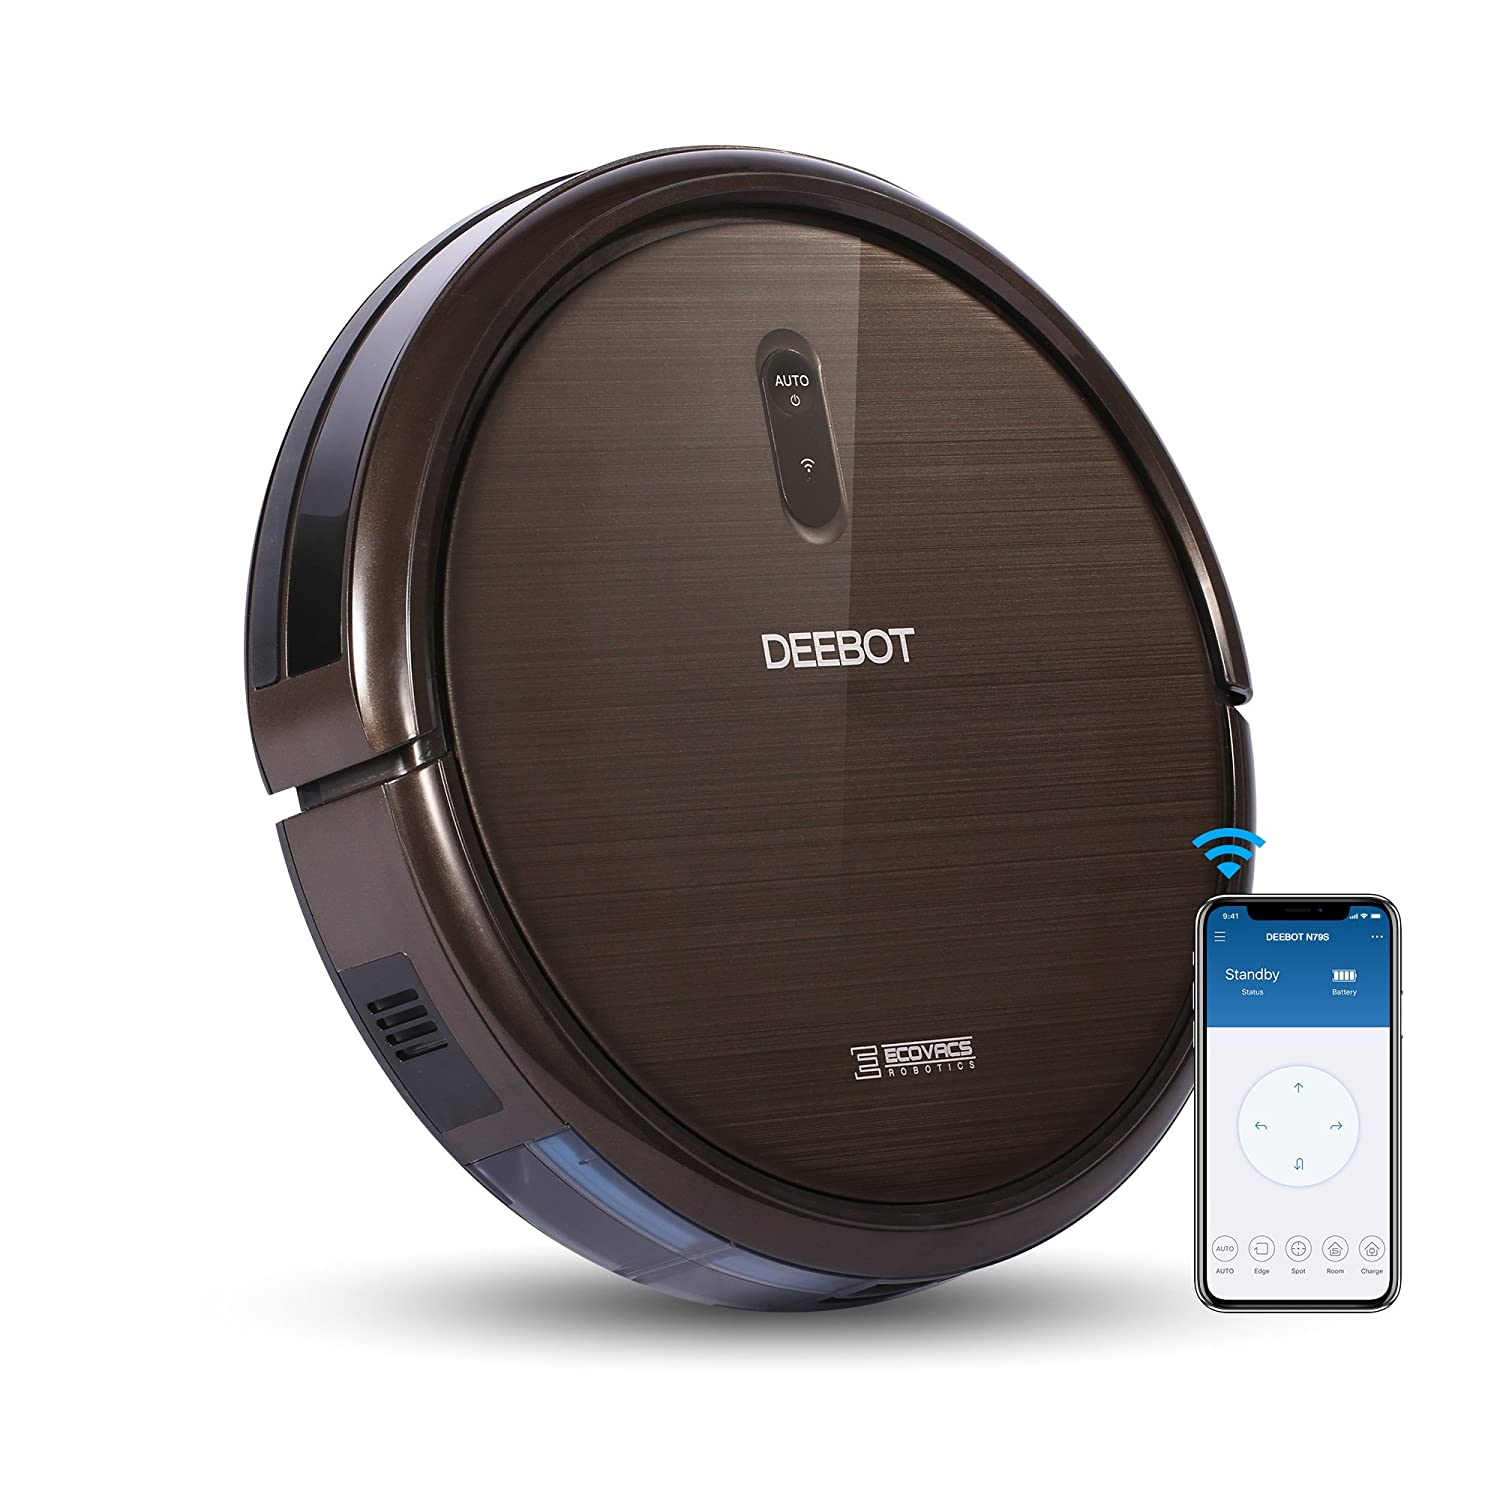 ECOVACS Robotics DEEBOT N79S Robot Vacuum - High Suction with Beater Brush, Auto Self-Charging, Drop Sensor, Alexa & App Connect, works On Hard Floor & Carpet - 2 Year Warranty